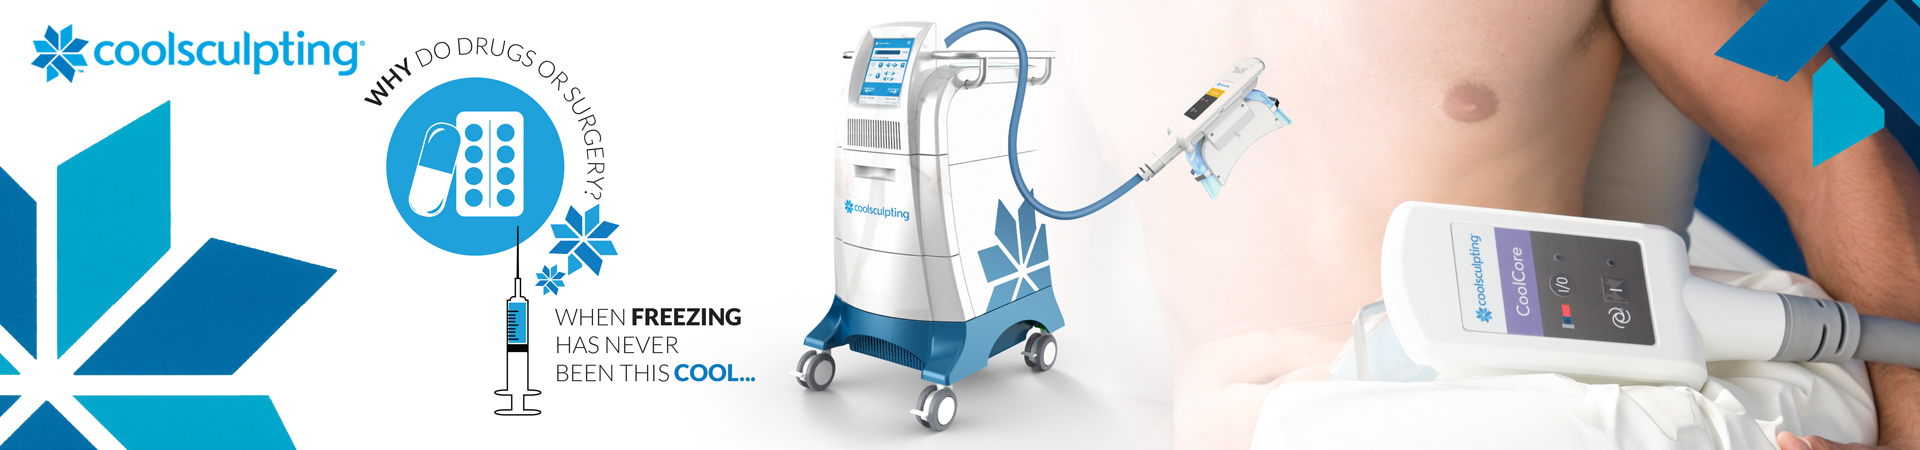 slide-coolsculpting-evomedica